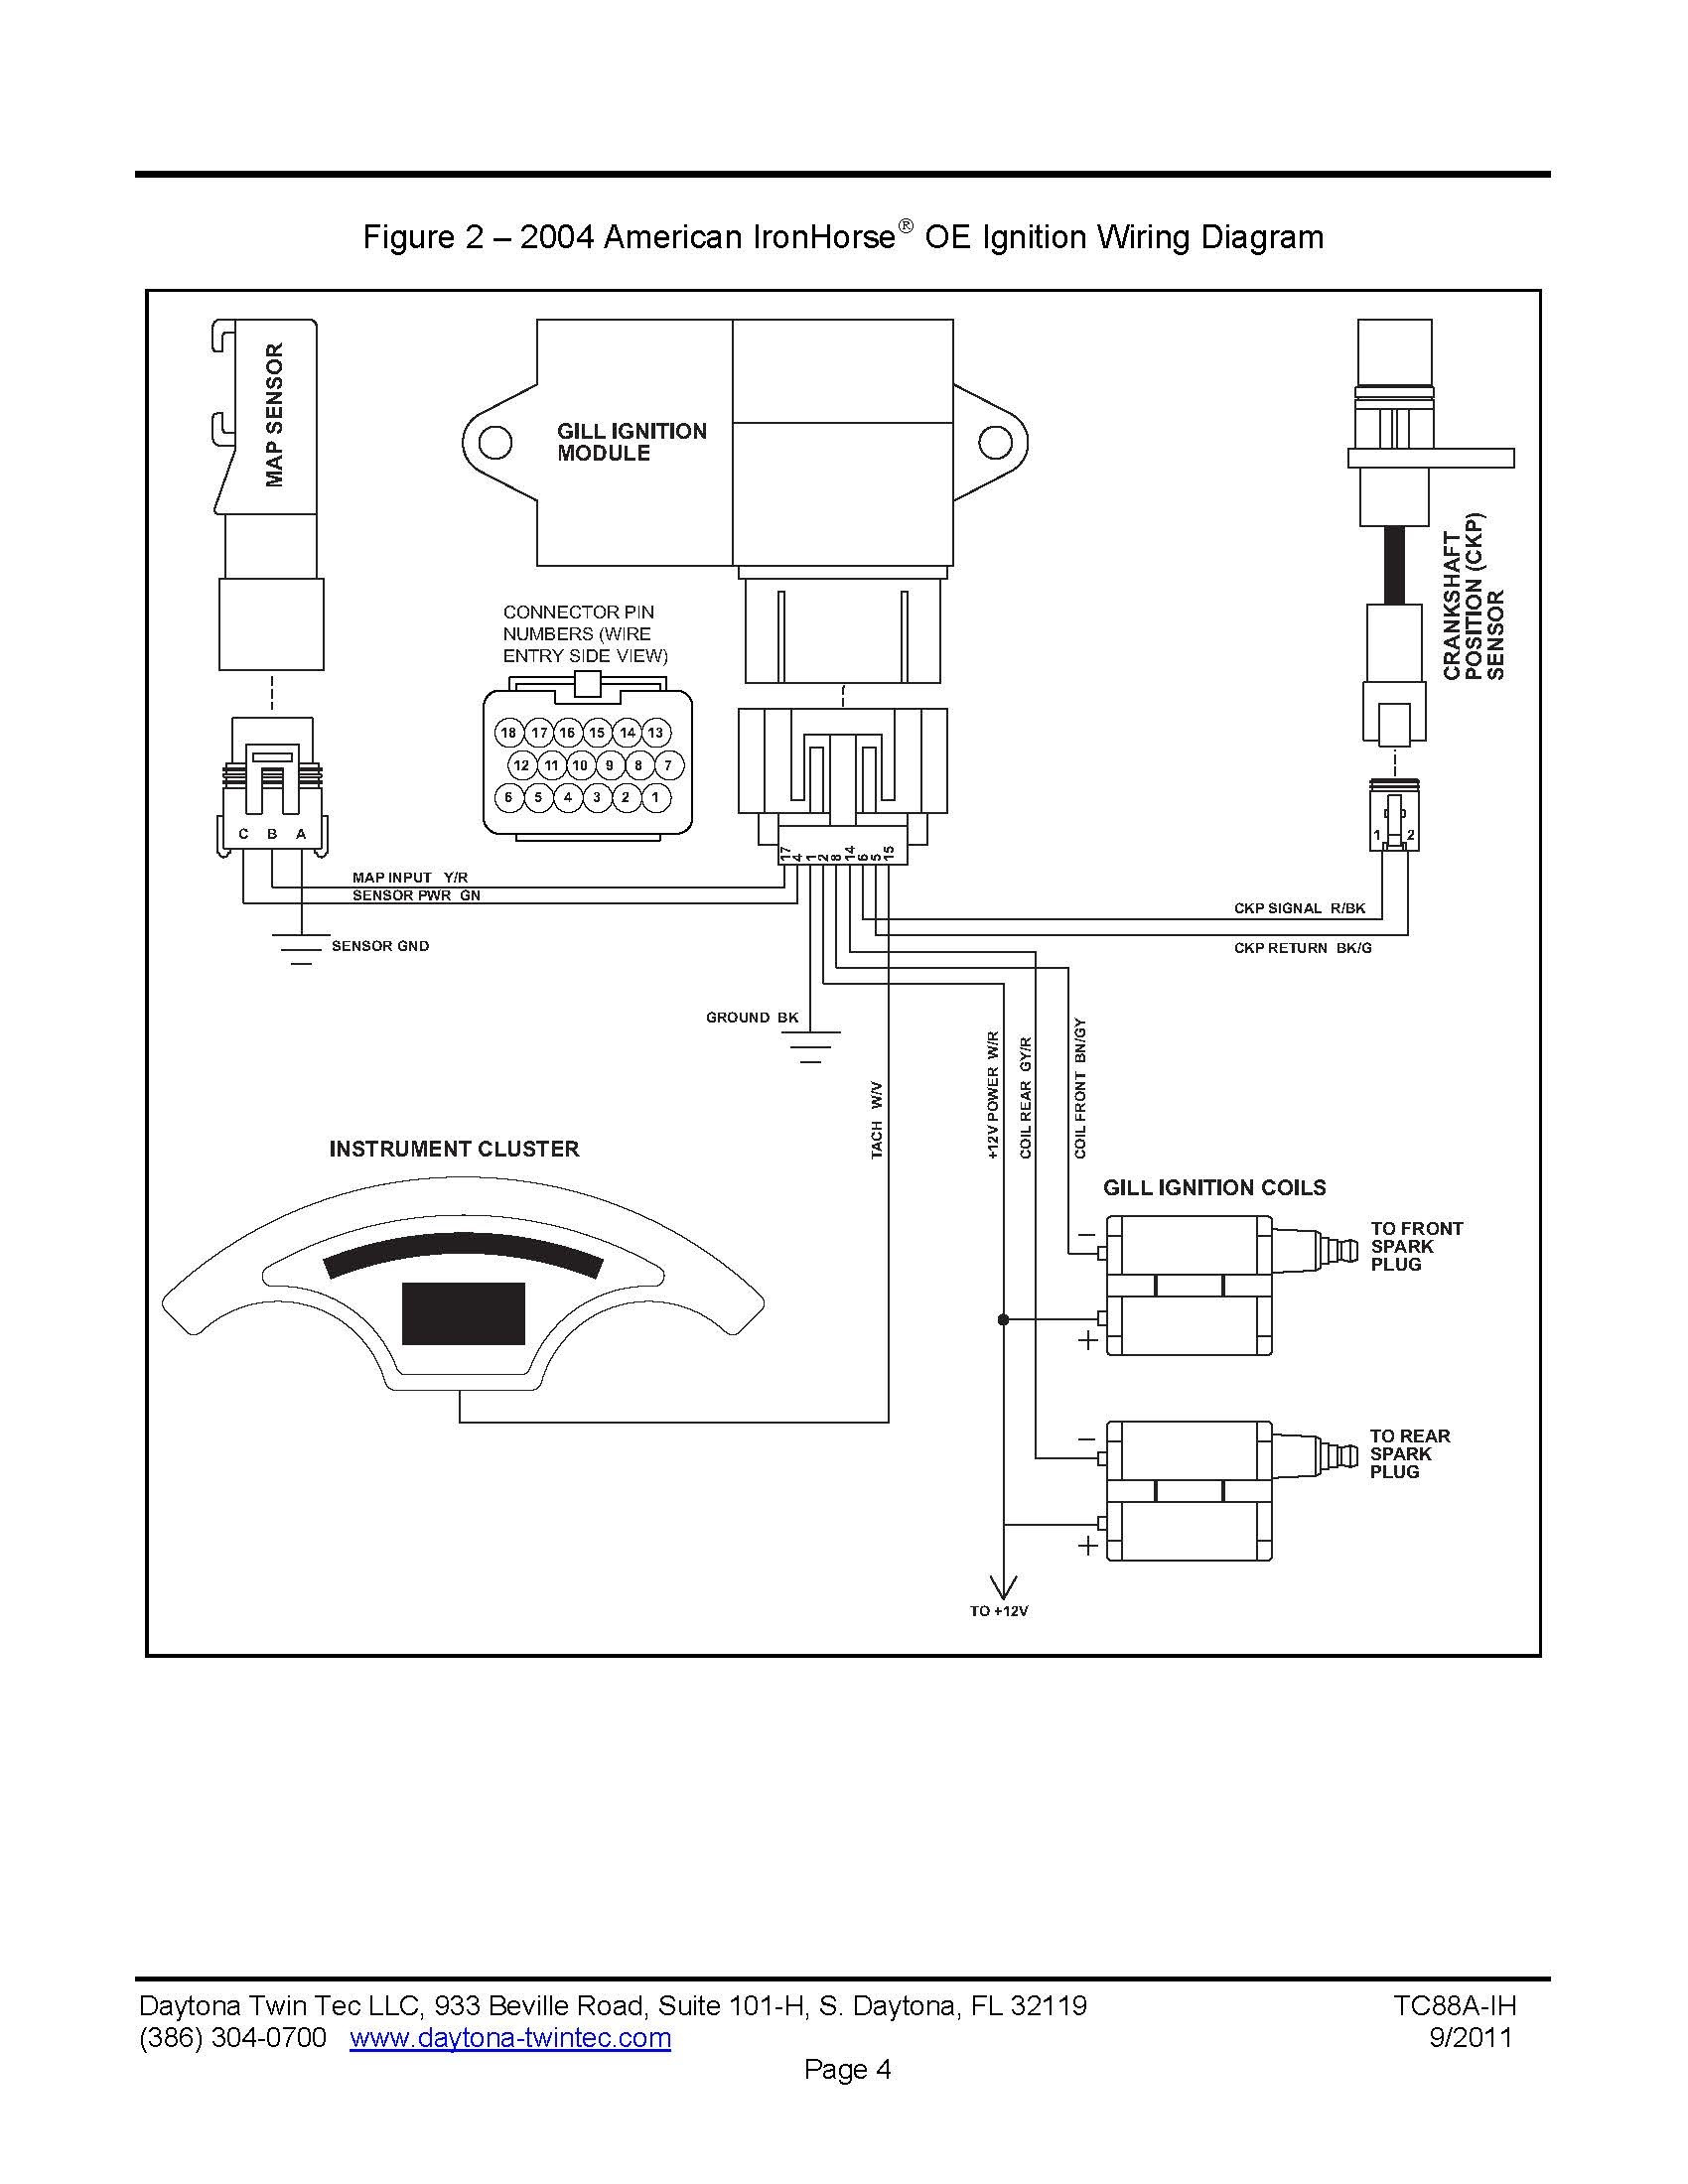 Harley Sd Sensor Wiring Diagram | Wiring Liry on harley generator diagram, harley rear axle diagram, harley wiring tools, harley panhead wiring, harley dash wiring, harley fuel lines diagram, harley frame diagram, harley magneto diagram, harley headlight diagram, harley fuse diagram, harley throttle cable diagram, harley stator diagram, harley softail wiring harness, harley evo diagram, harley shift linkage diagram, harley relay diagram, harley fuel pump diagram, harley switch diagram, harley wiring color codes,